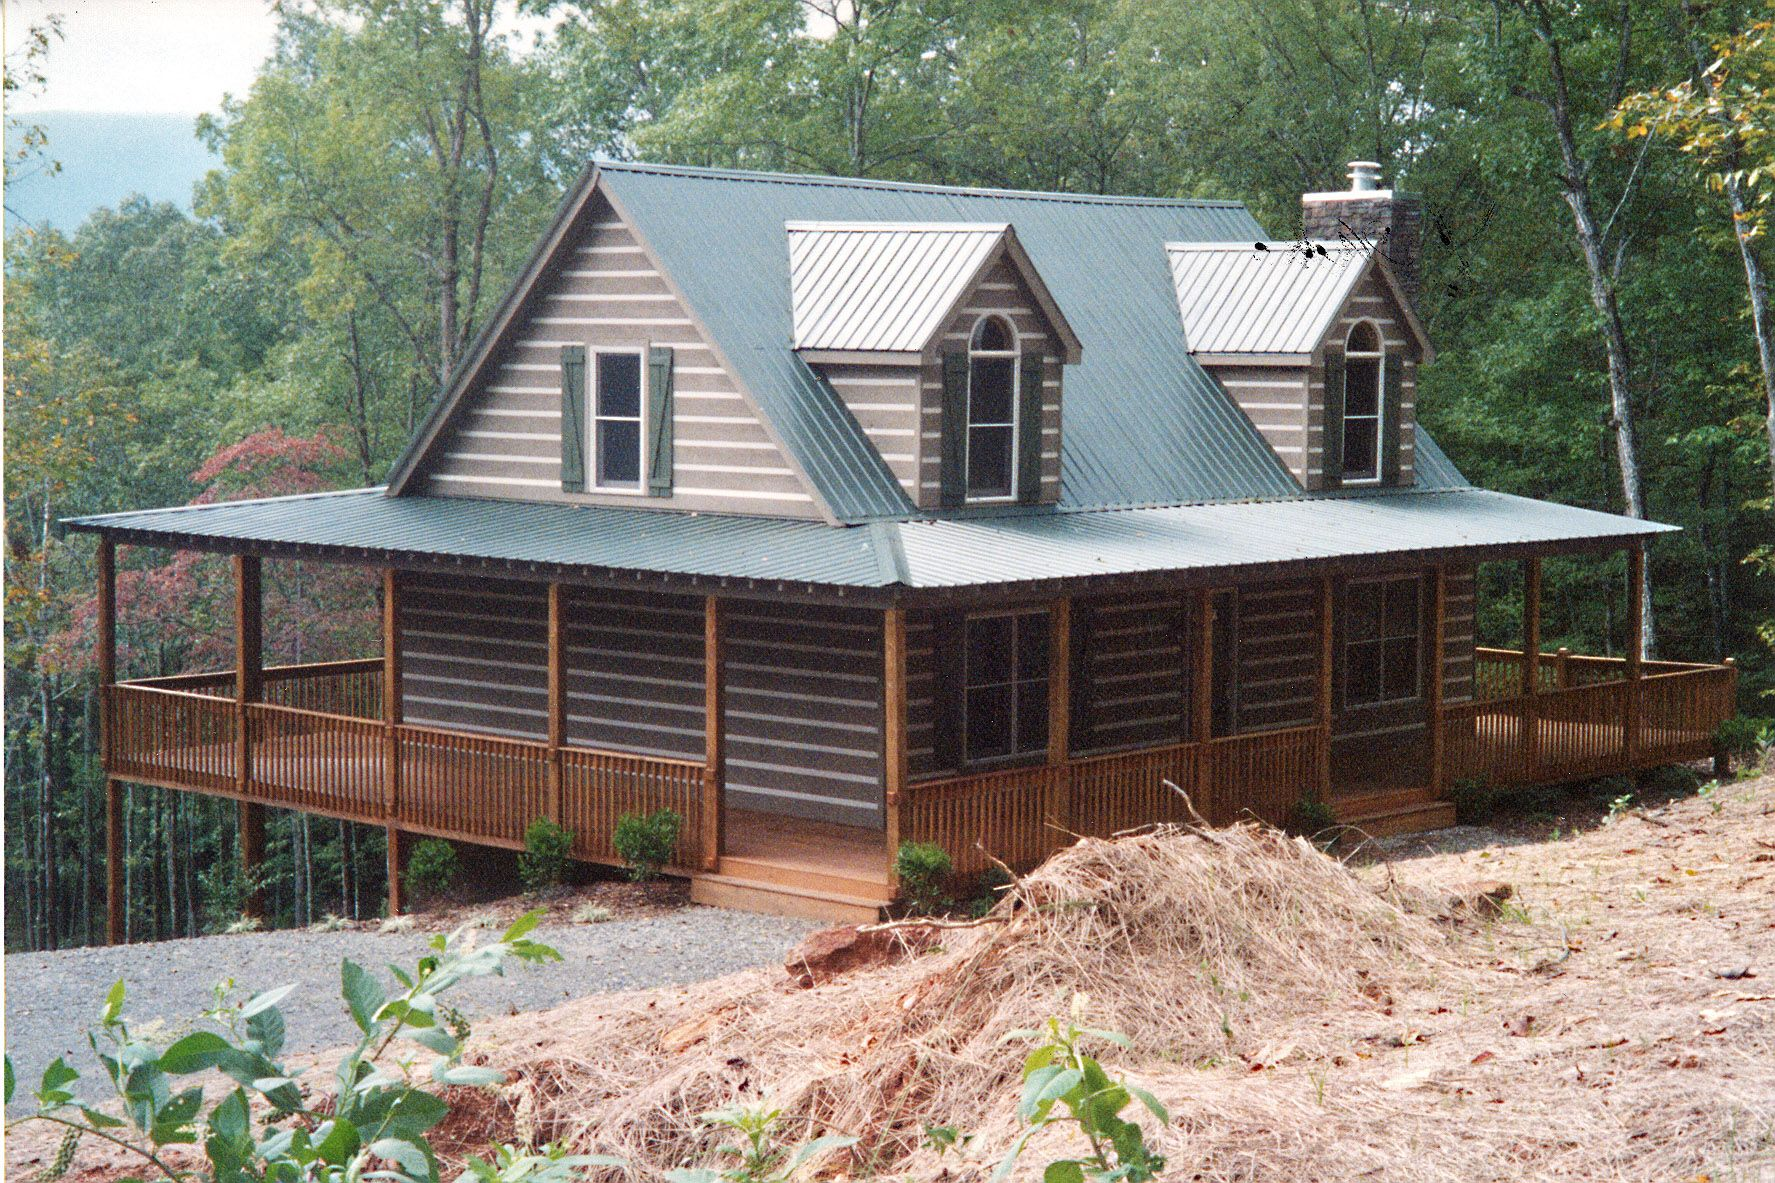 Highland modular home by nationwide homes built on a for Modular home with wrap around porch